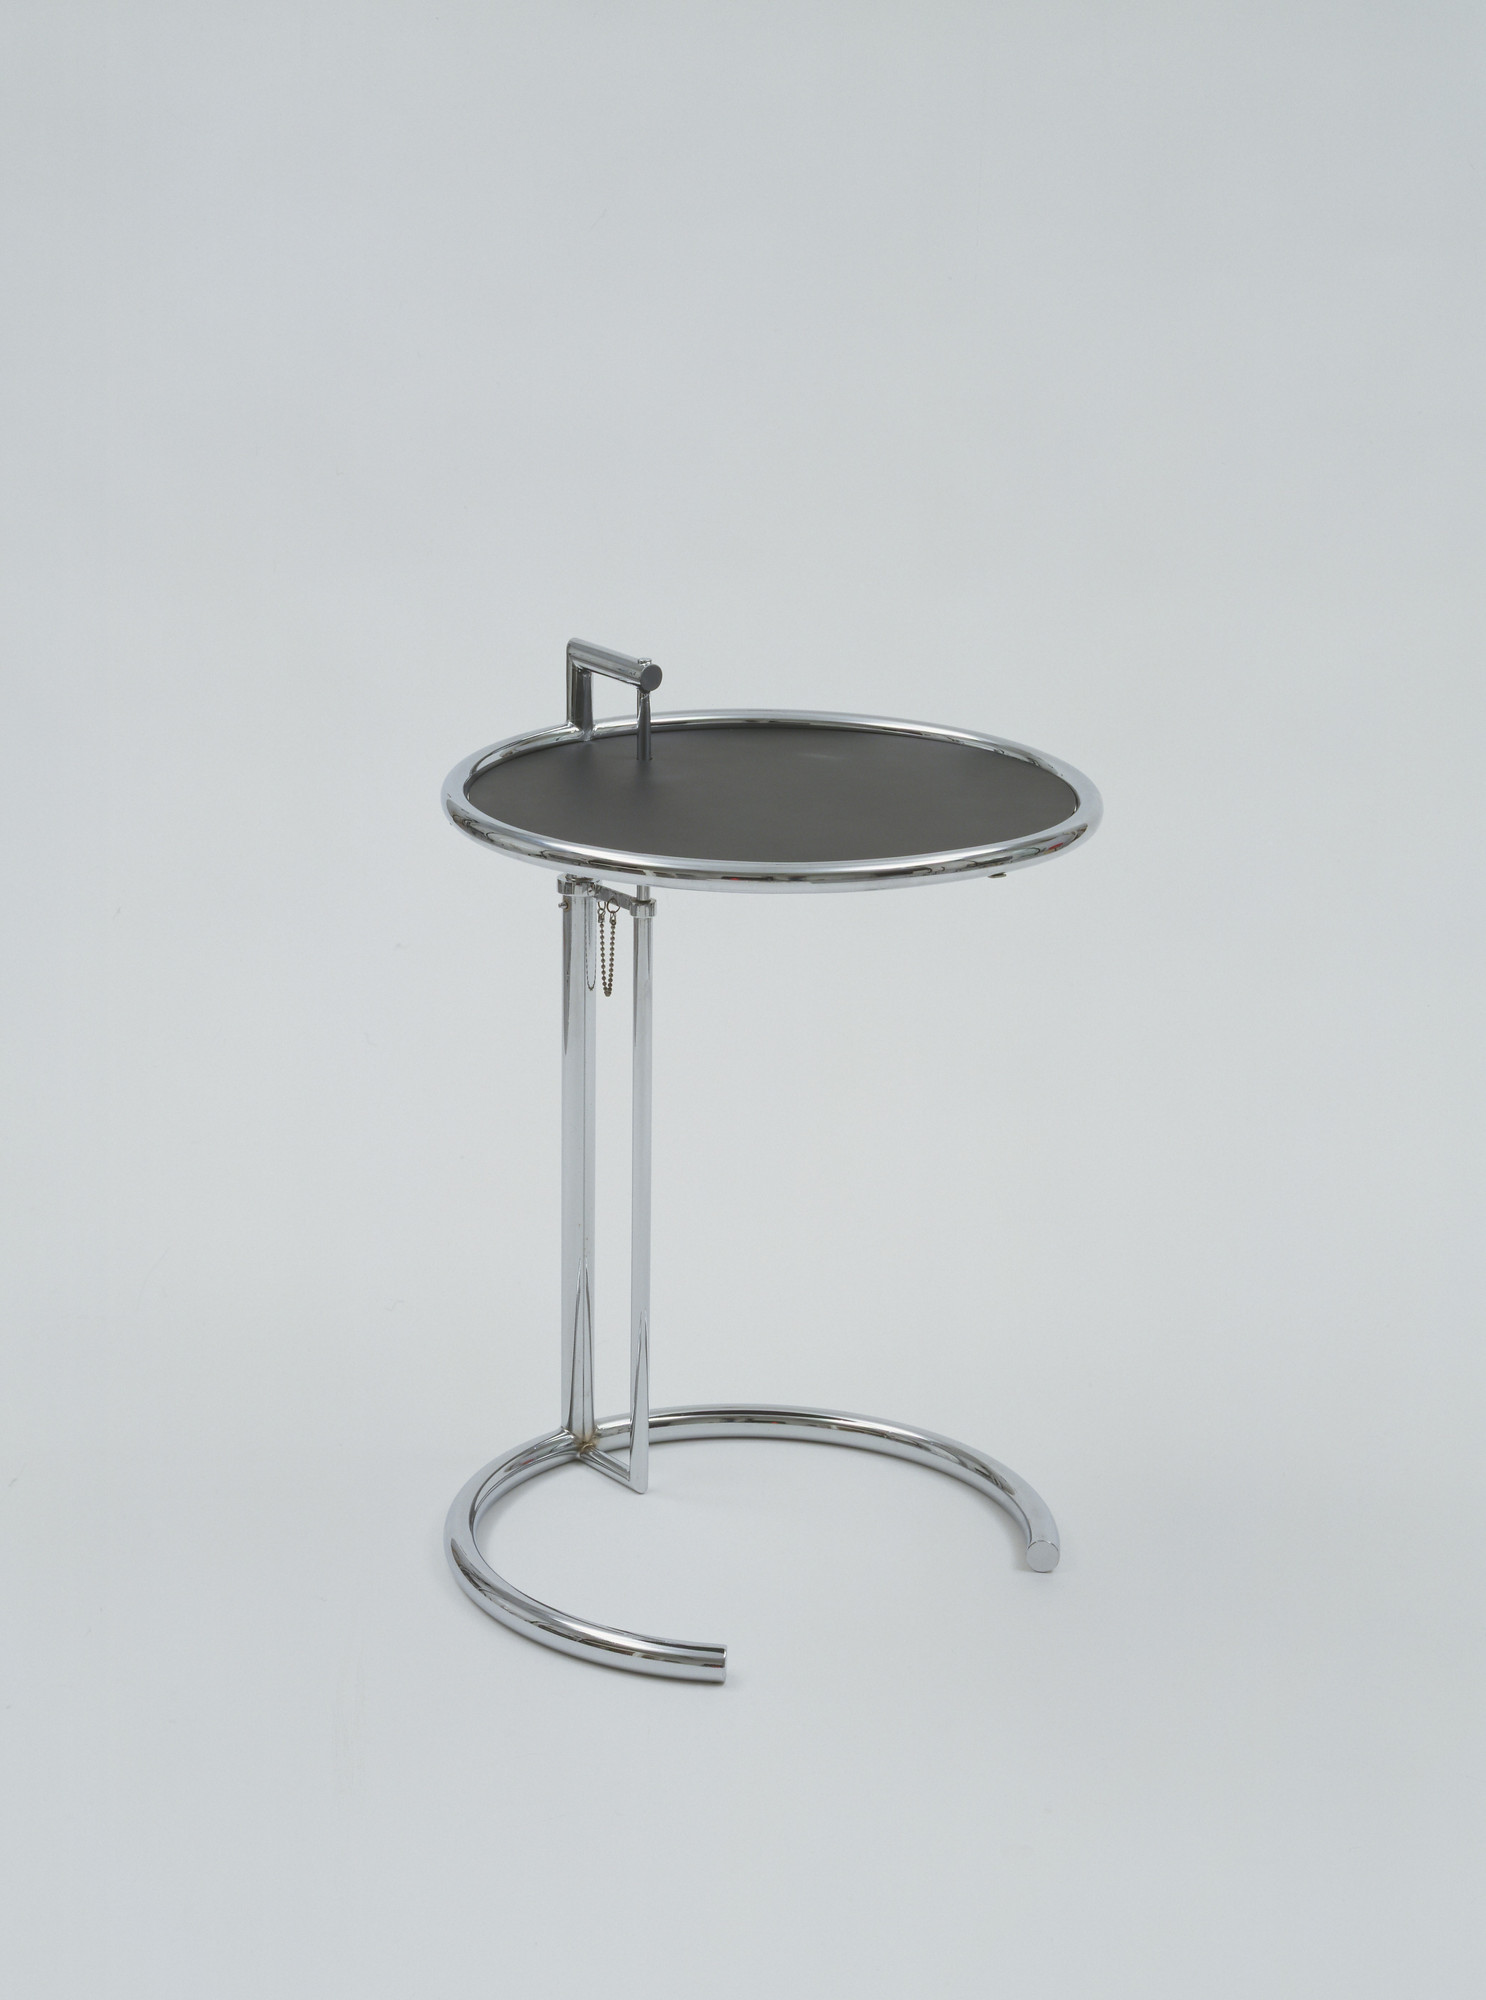 Eileen Gray Adjustable Table eileen gray adjustable table designed 1927 this exle 1976 moma